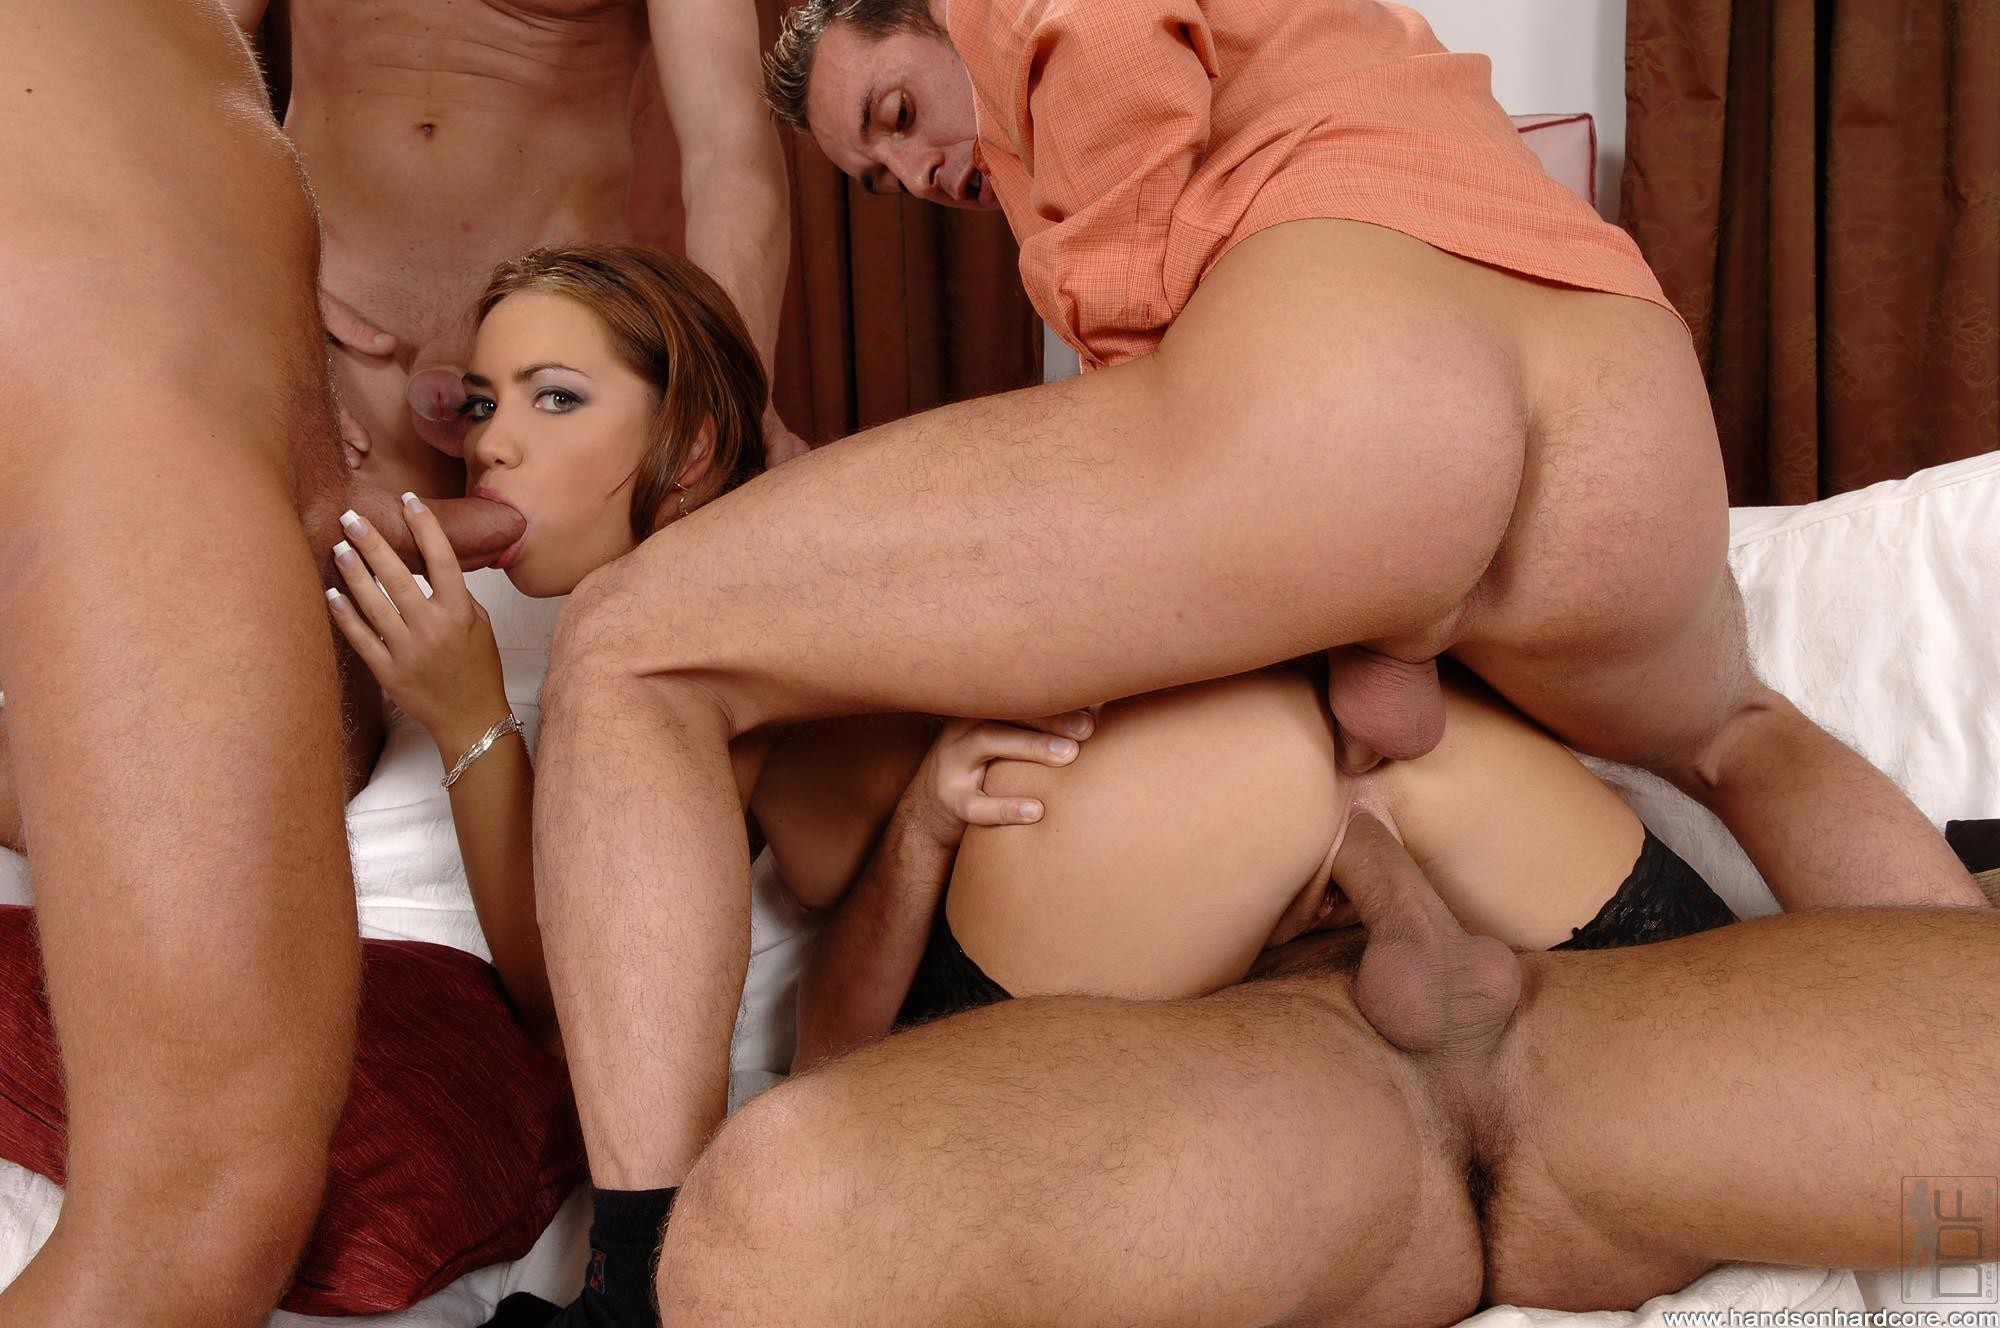 Party Girls pornstars penetration